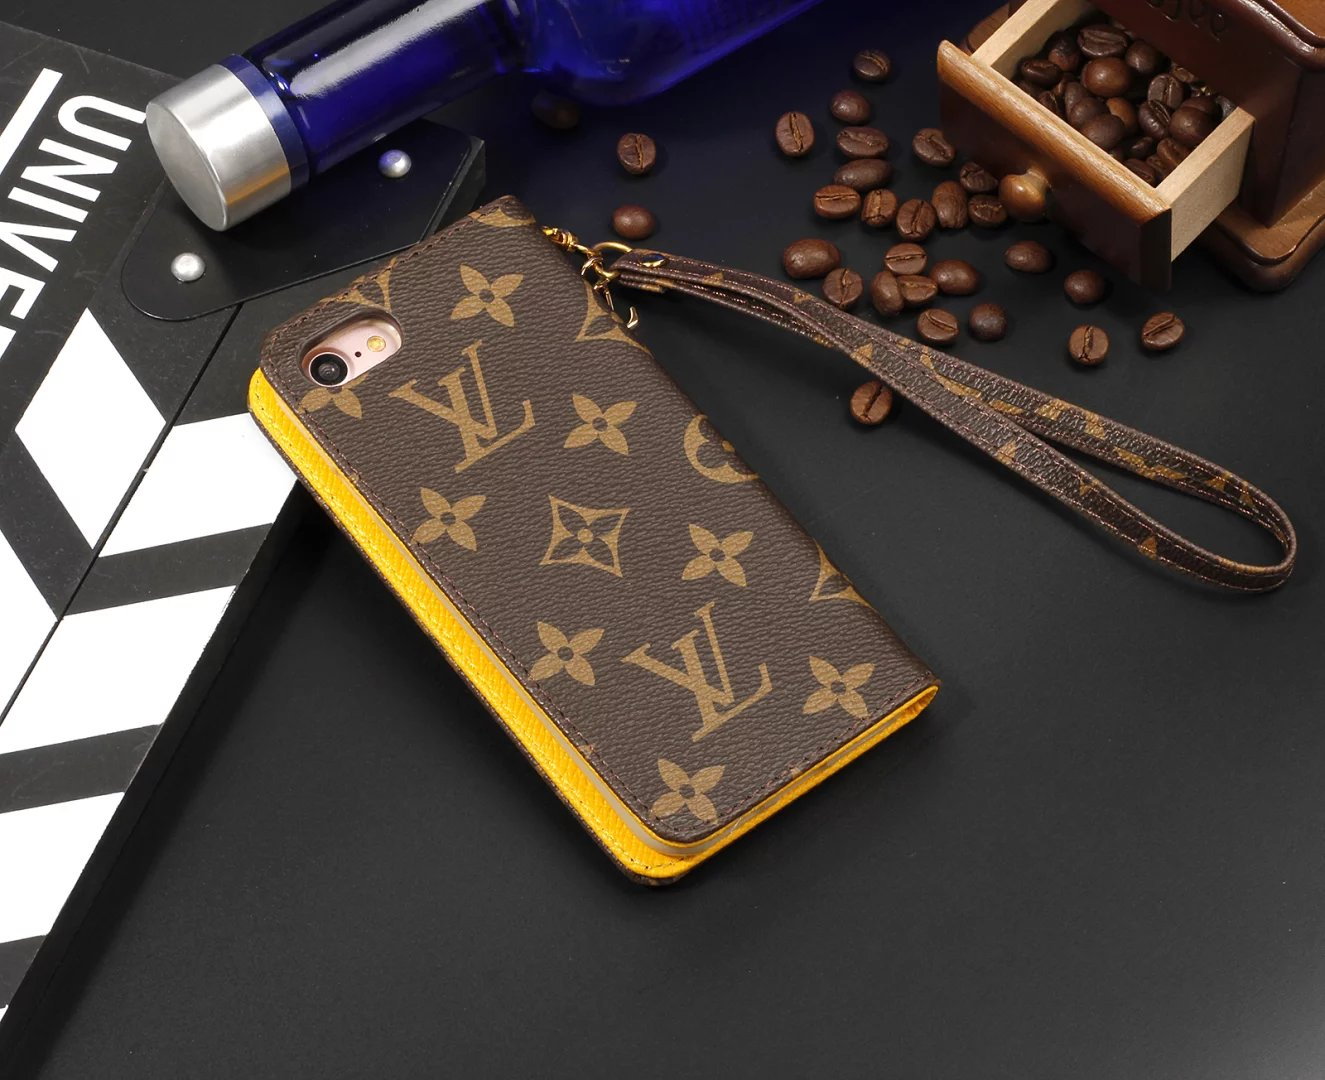 iphone silikonhülle iphone hülle online shop Louis Vuitton iphone7 Plus hülle smartphone ca7 elber machen schutzhülle 7lber machen virenschutz iphone 7 Plus iphone hülle 7lber machen wann kommt das iphone 6 handy zubehör iphone 7 Plus